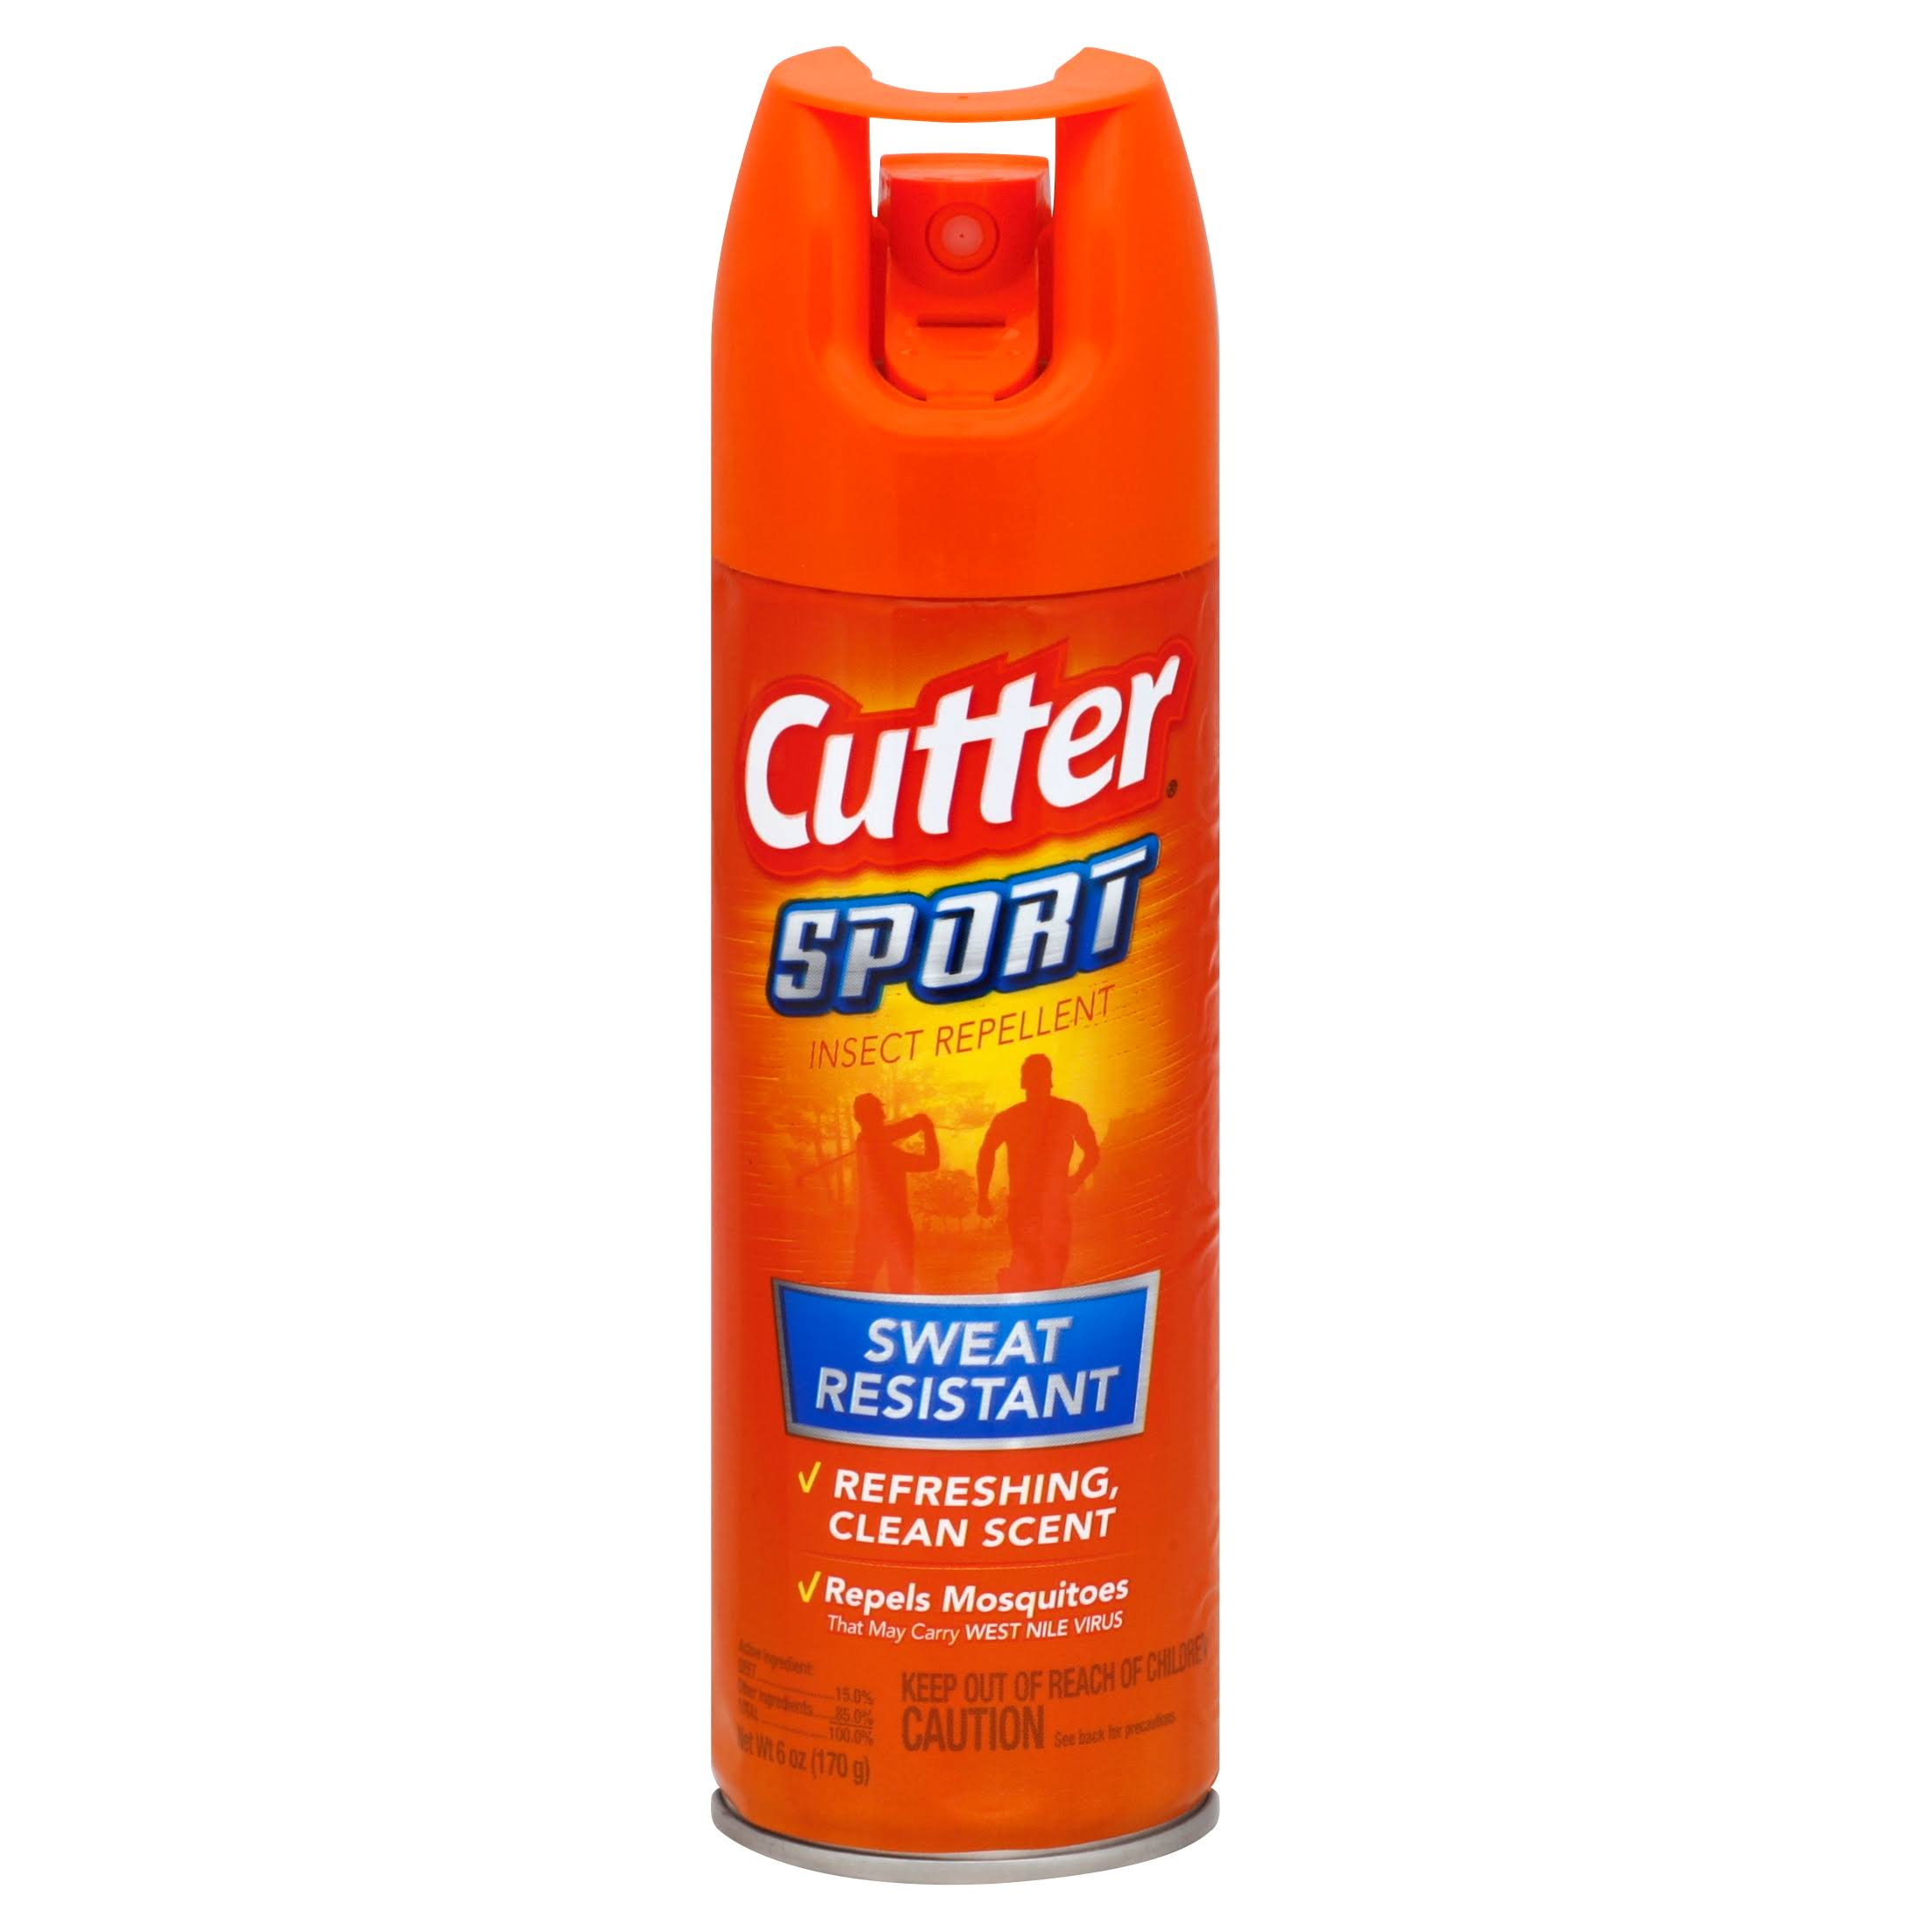 Cutter Sport Insect Repellent - 6oz